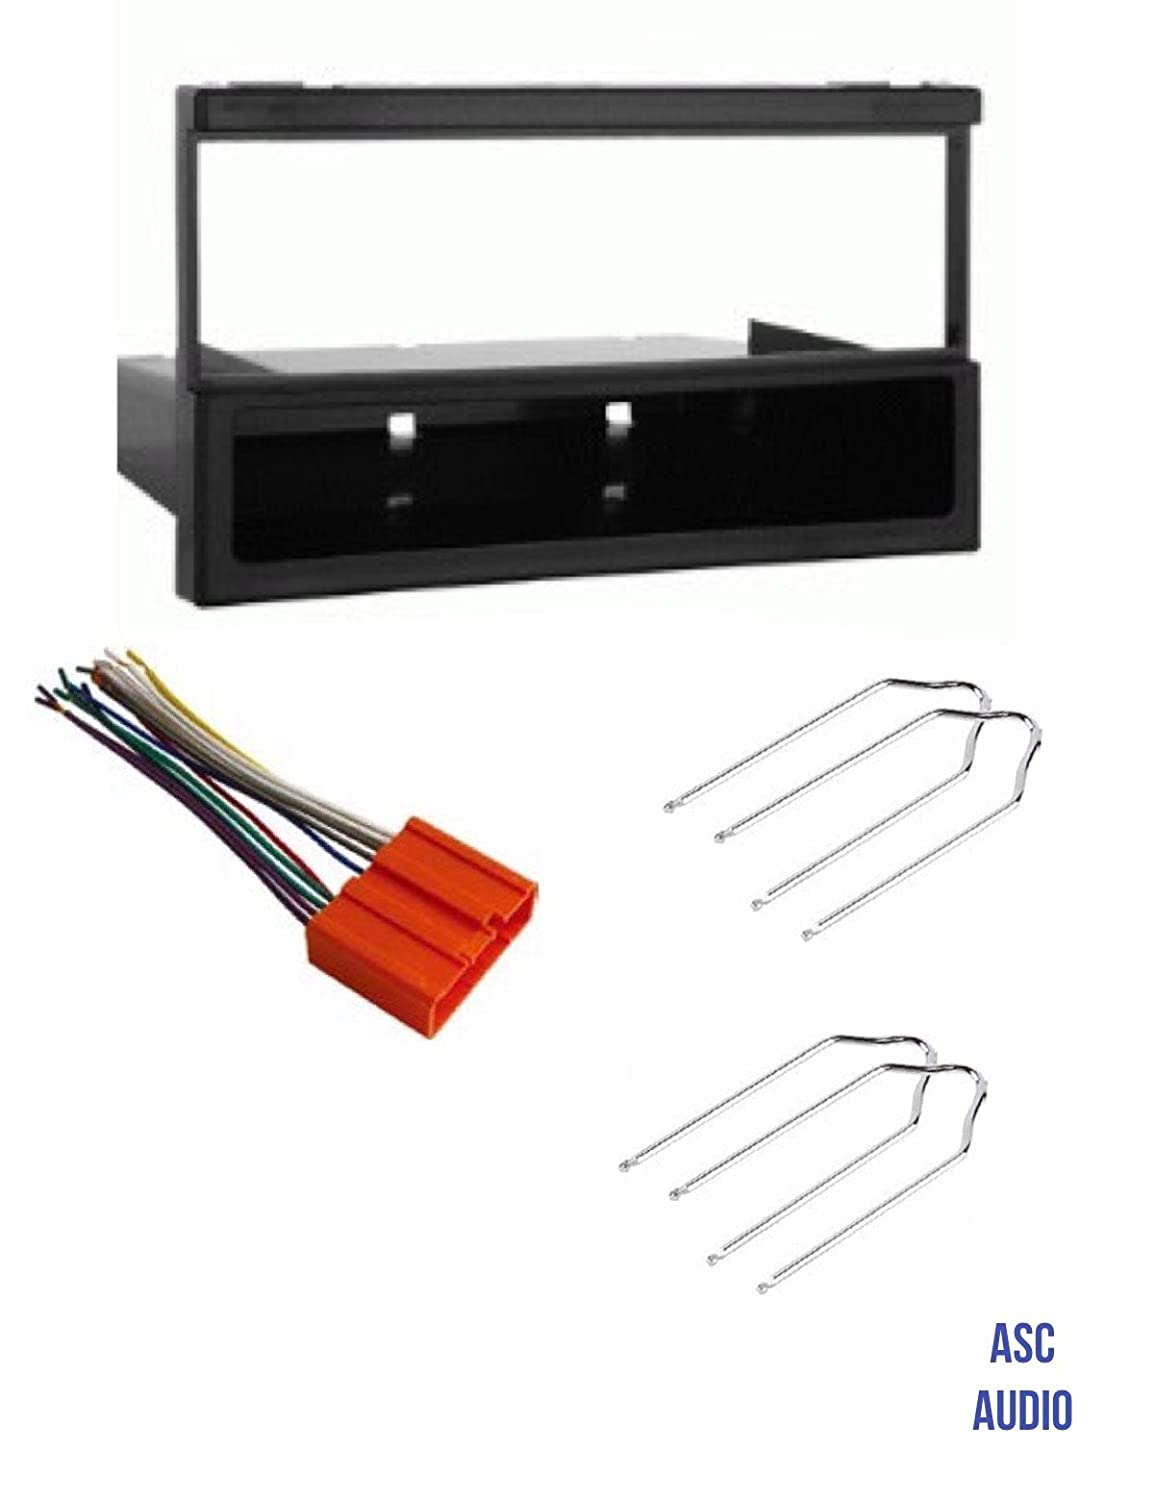 ASC Car Stereo Dash Install Kit, Wire Harness, and Radio Tool for Installing a Single Din Aftermarket Radio for Some Mazda Vehicles - Please Read Compatible Vehicles and Restrictions Listed Below